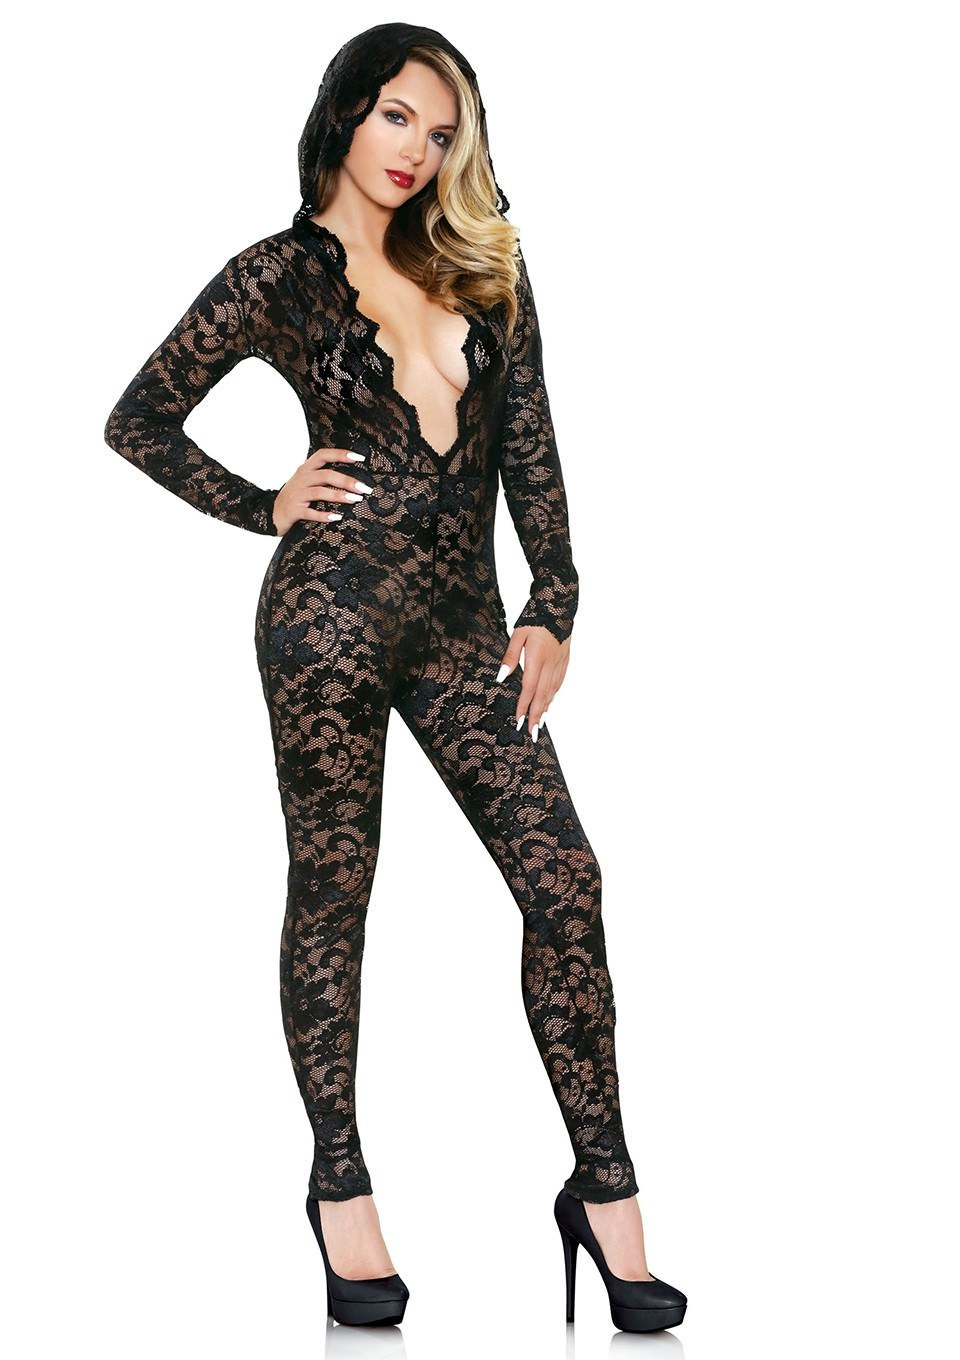 Image of   Fantasy Lingerie Mia Lace Hooded Catsuit